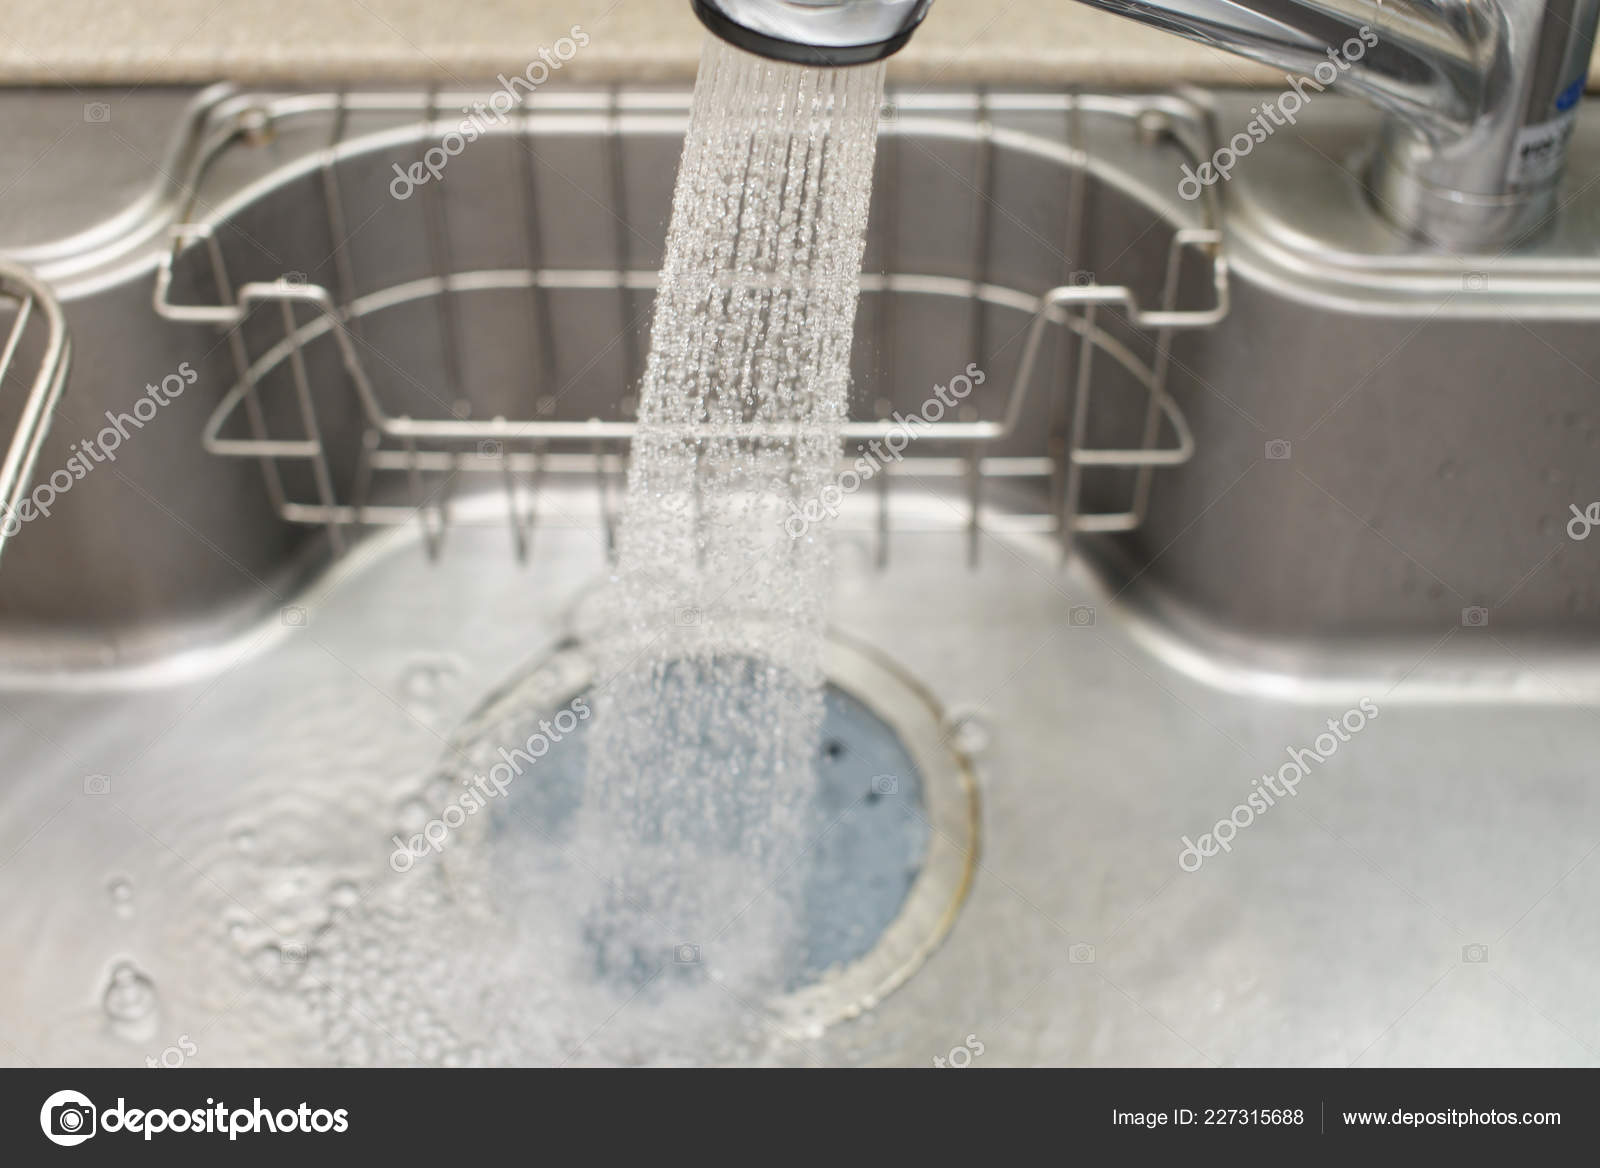 Stainless Steel Kitchen Faucet Sink Running Water Stock Photo C Liza5450 227315688